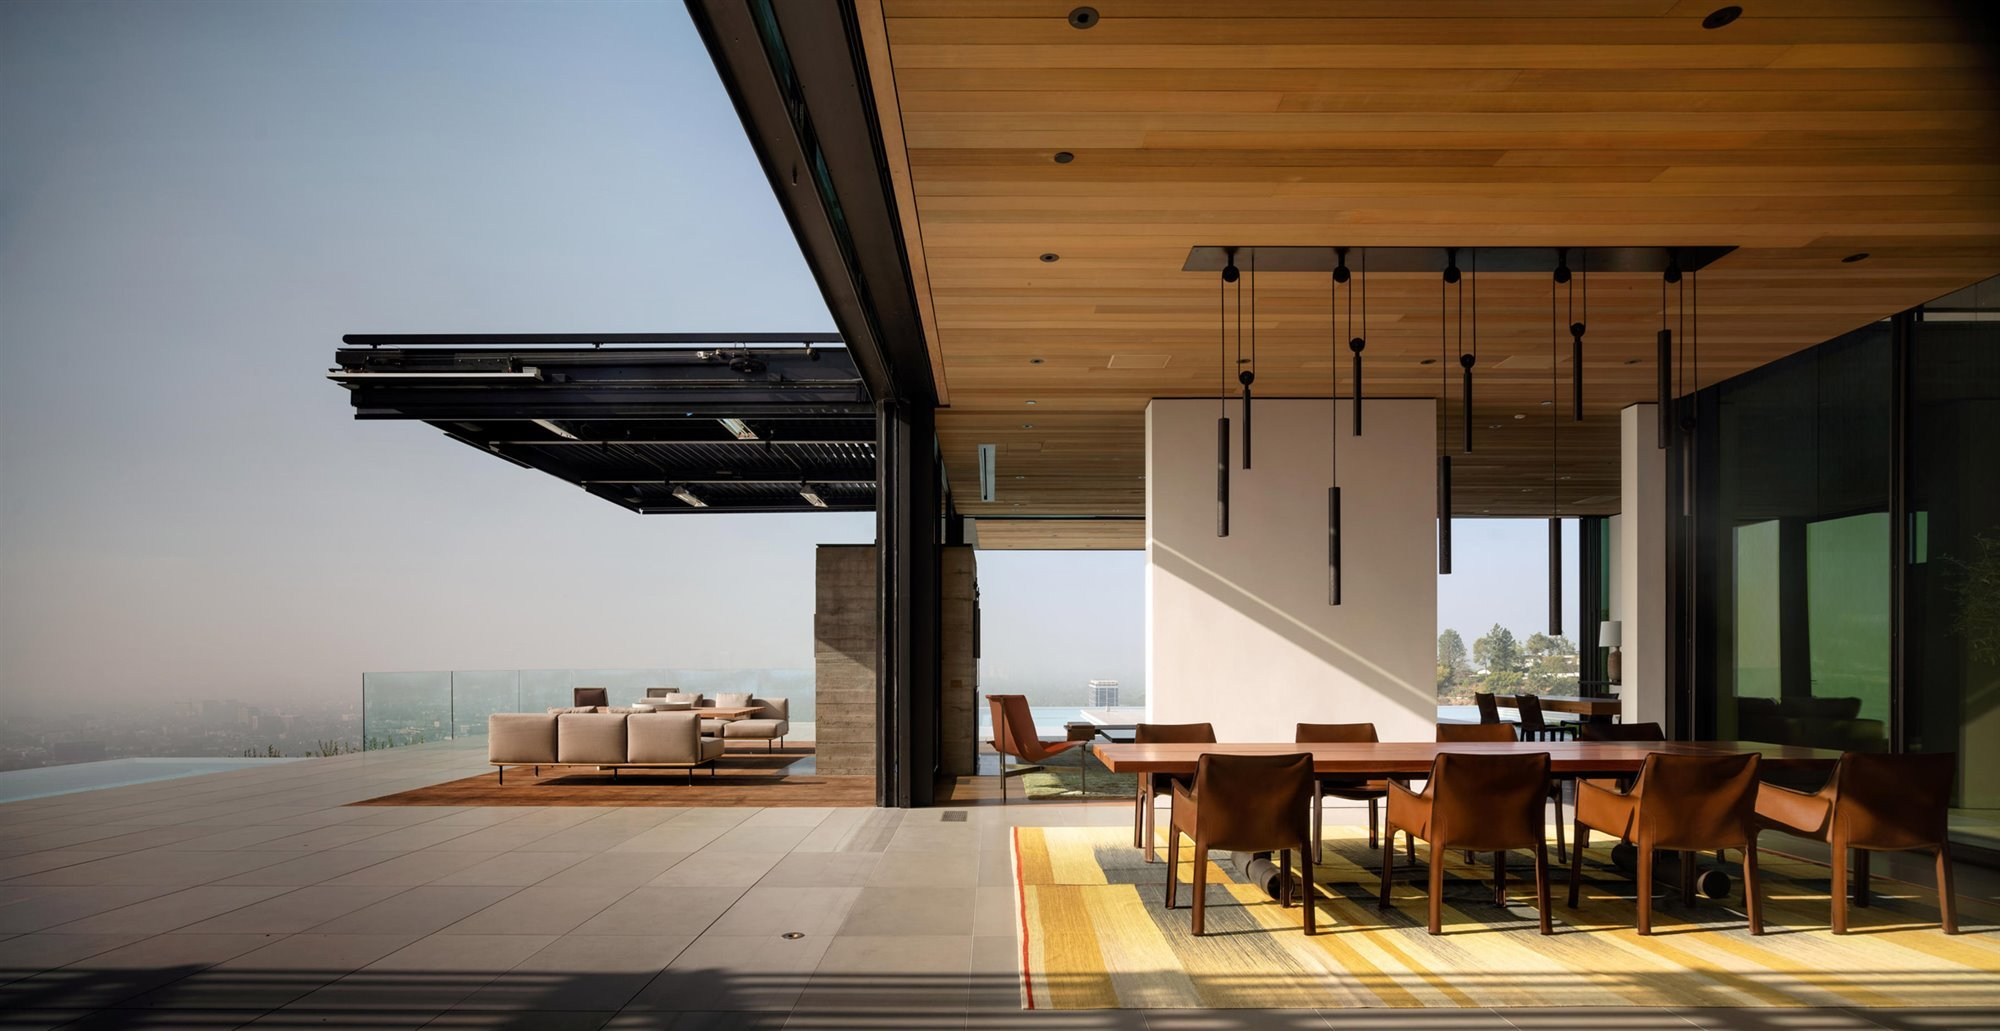 Casa en Collywood diseñada por Olson Kundig en Los angeles 8